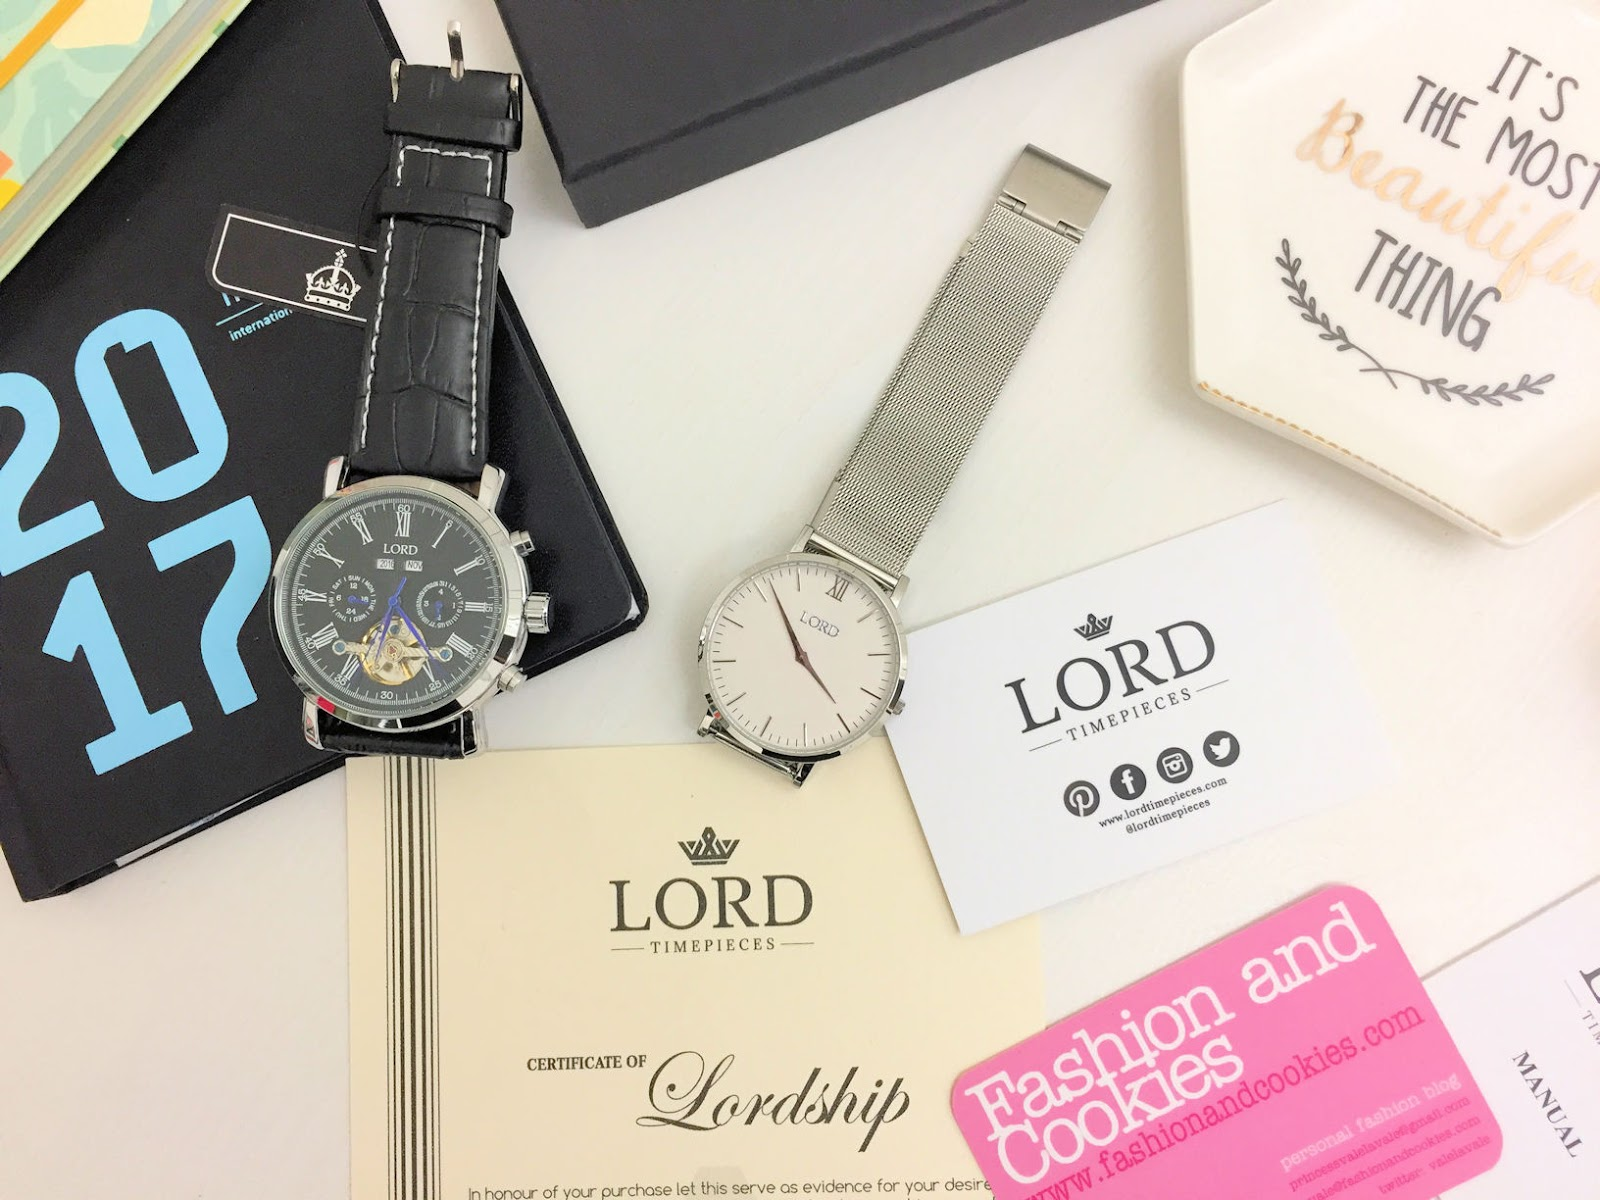 Lord Timepieces shopping experience, Lord watches review on Fashion and Cookies fashion blog, fashion blogger style